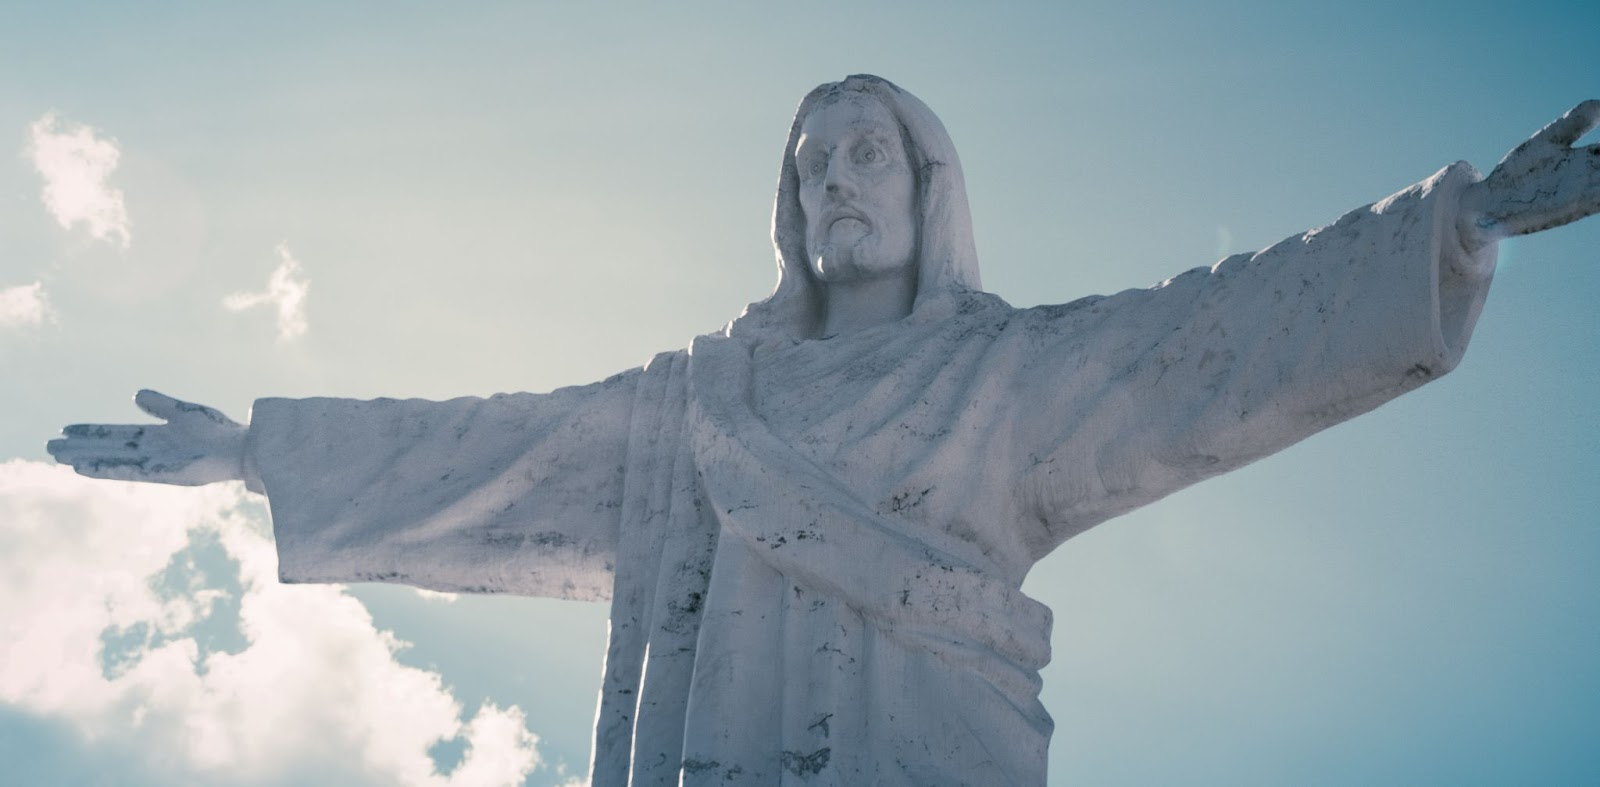 A statue of Christ against the evening sky